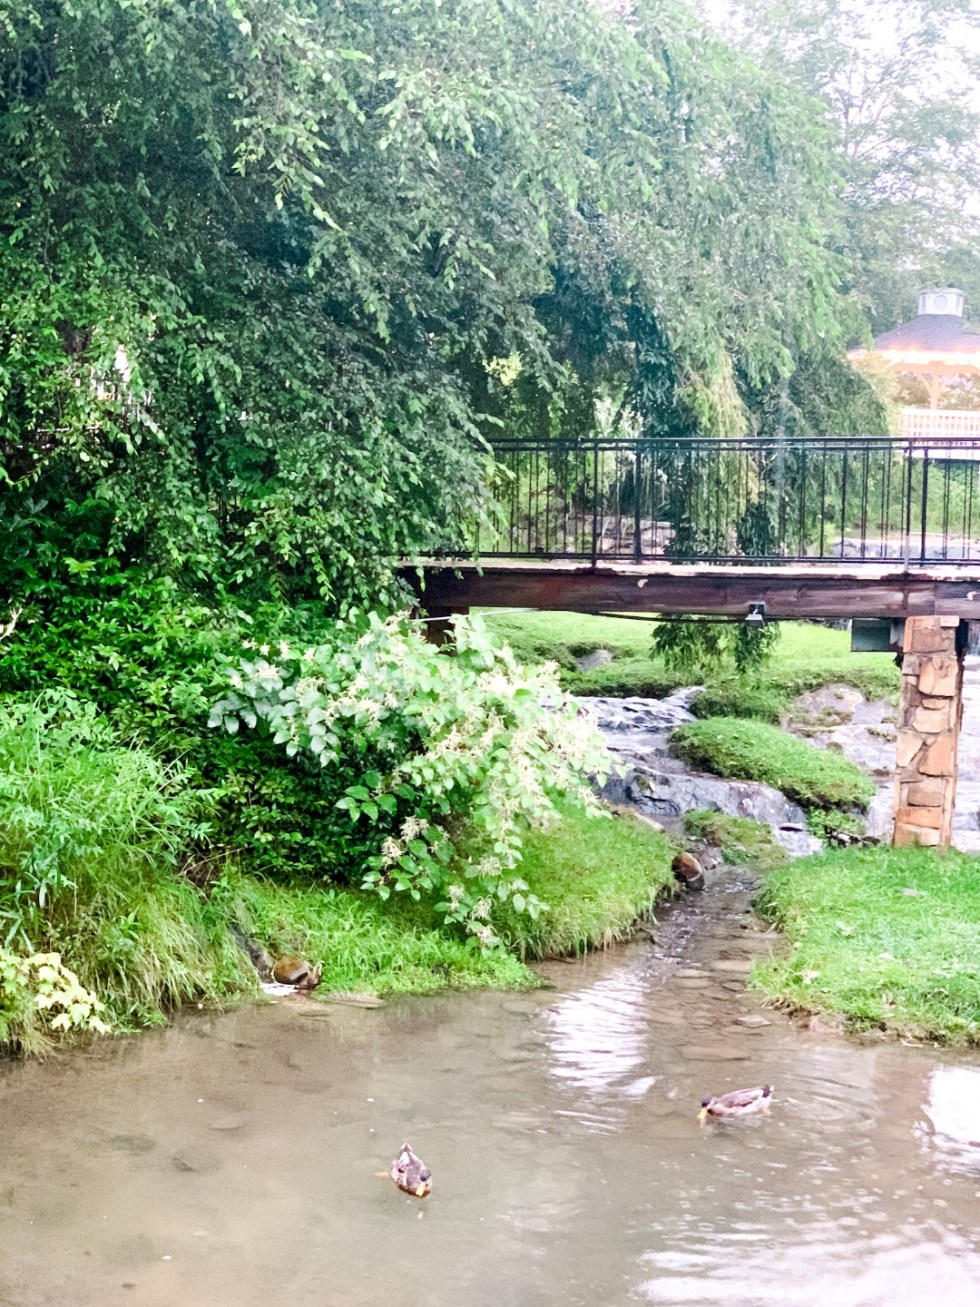 Where to Stay in Blowing Rock: a Meadowbrook Inn Review - I'm Fixin' To - @mbg0112 | Meadow Brook Inn Blowing Rock by popular N.C. travel blog, I'm Fixin' To: image of a brook with ducks swimming in it at Meadow Brook Inn.